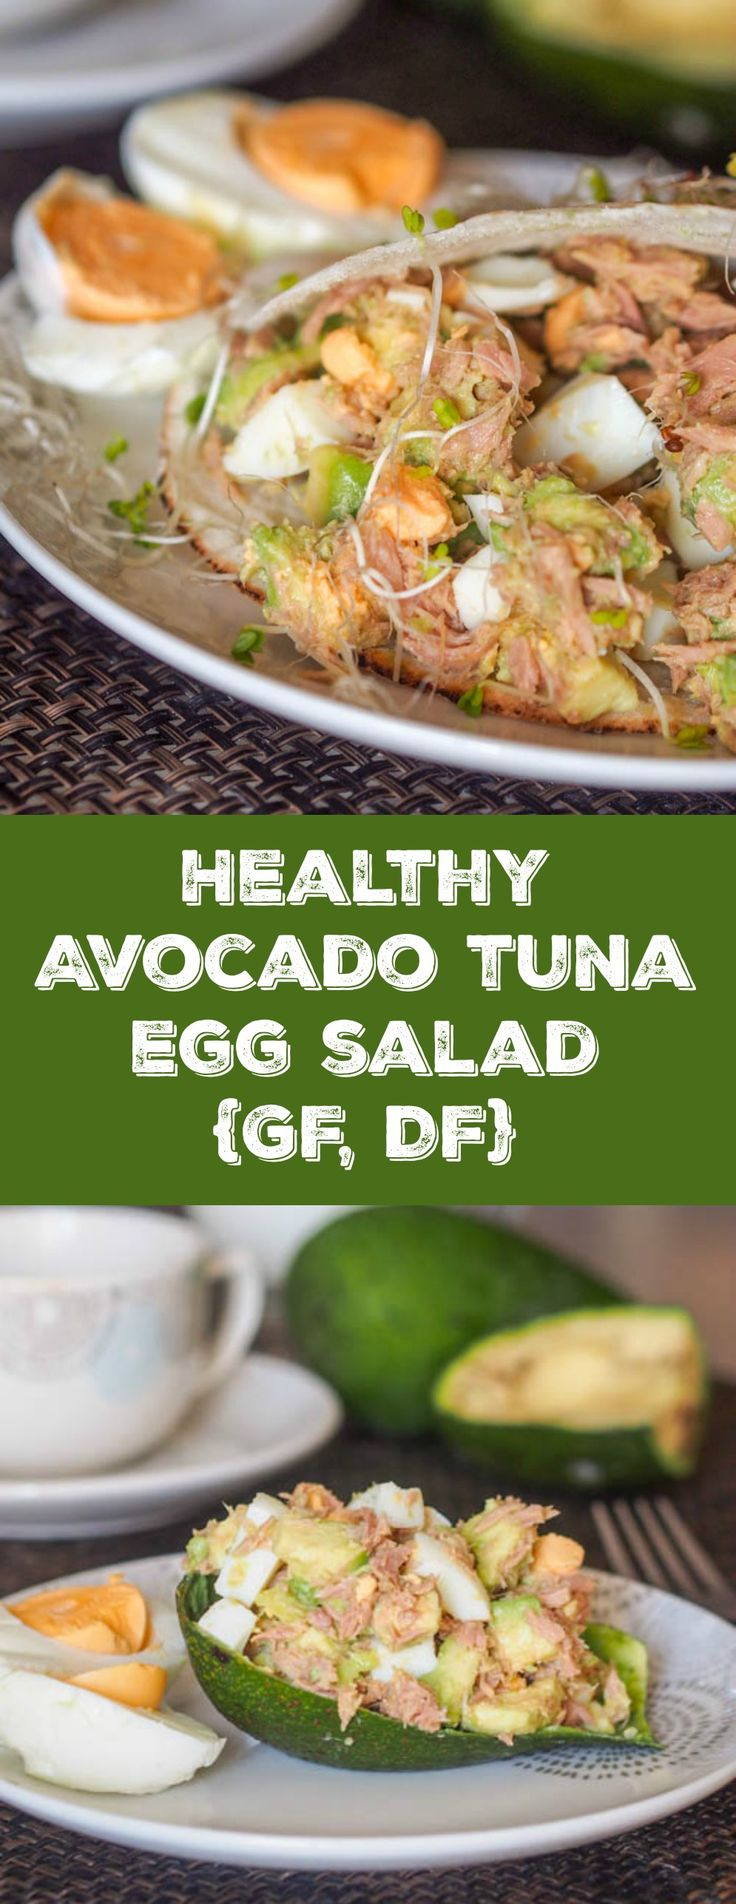 4 ingredient mayo free high protein low carb healthy avocado tuna egg salad. Avocado adds the perfect creaminess to bind everything together. Perfect breakfast or lunch. | avocadopesto.com